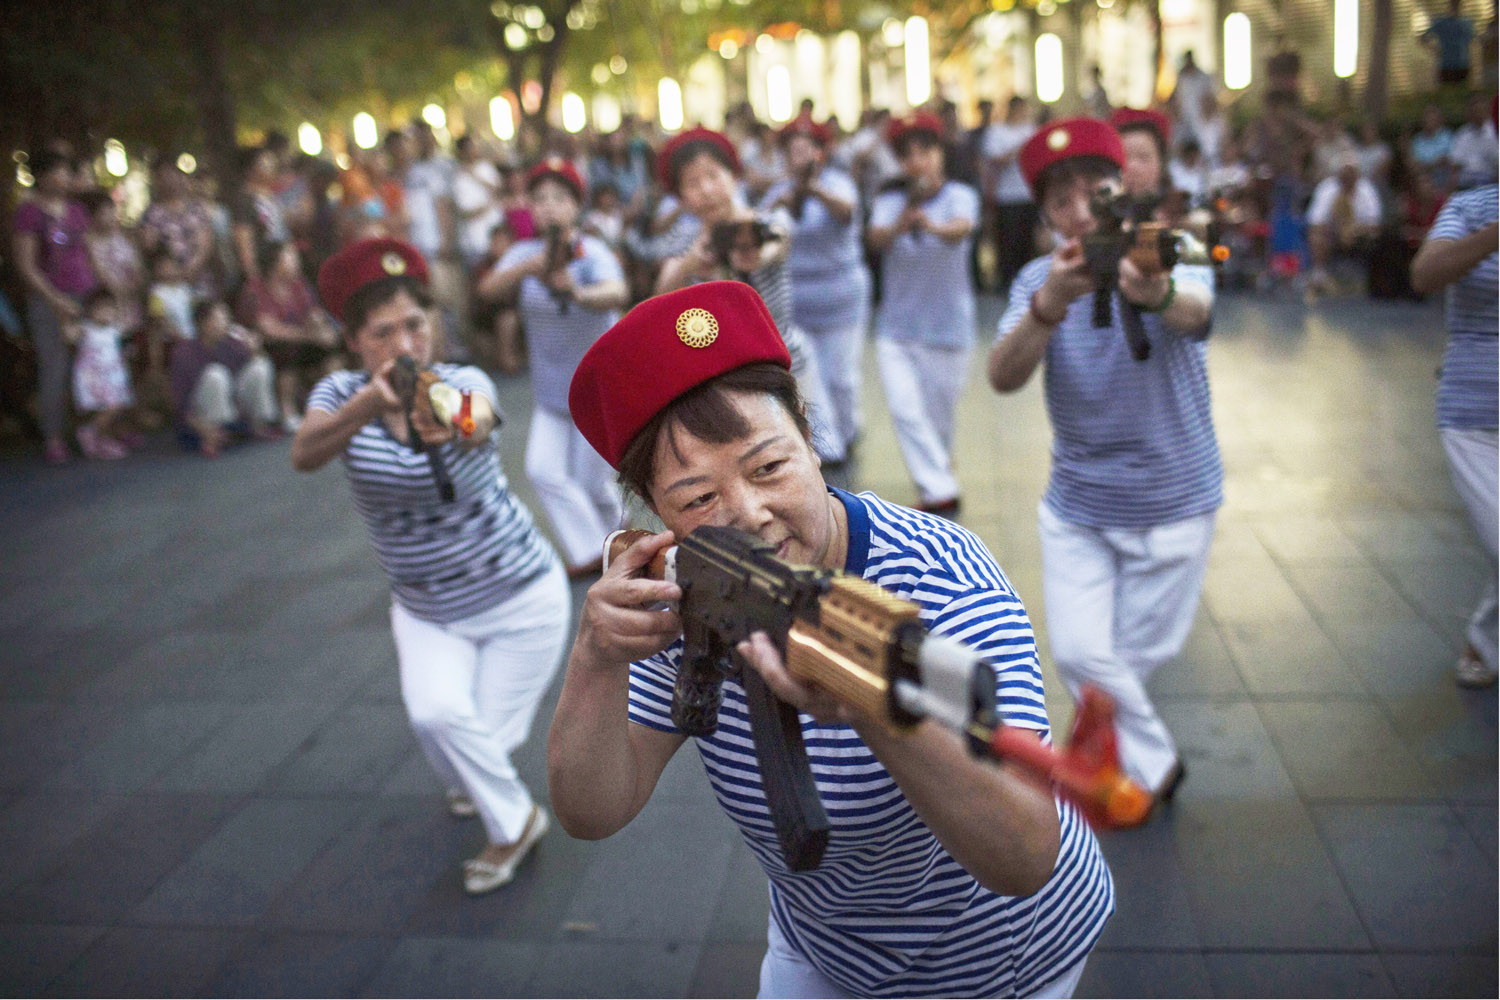 Jul. 8, 2014. Chinese women hold plastic guns as they take part in a performance by an amateur dance troupe re-enacting musical theatre scenes of the anti-Japanese war of 1937-1945 at a mall in Beijing, China.